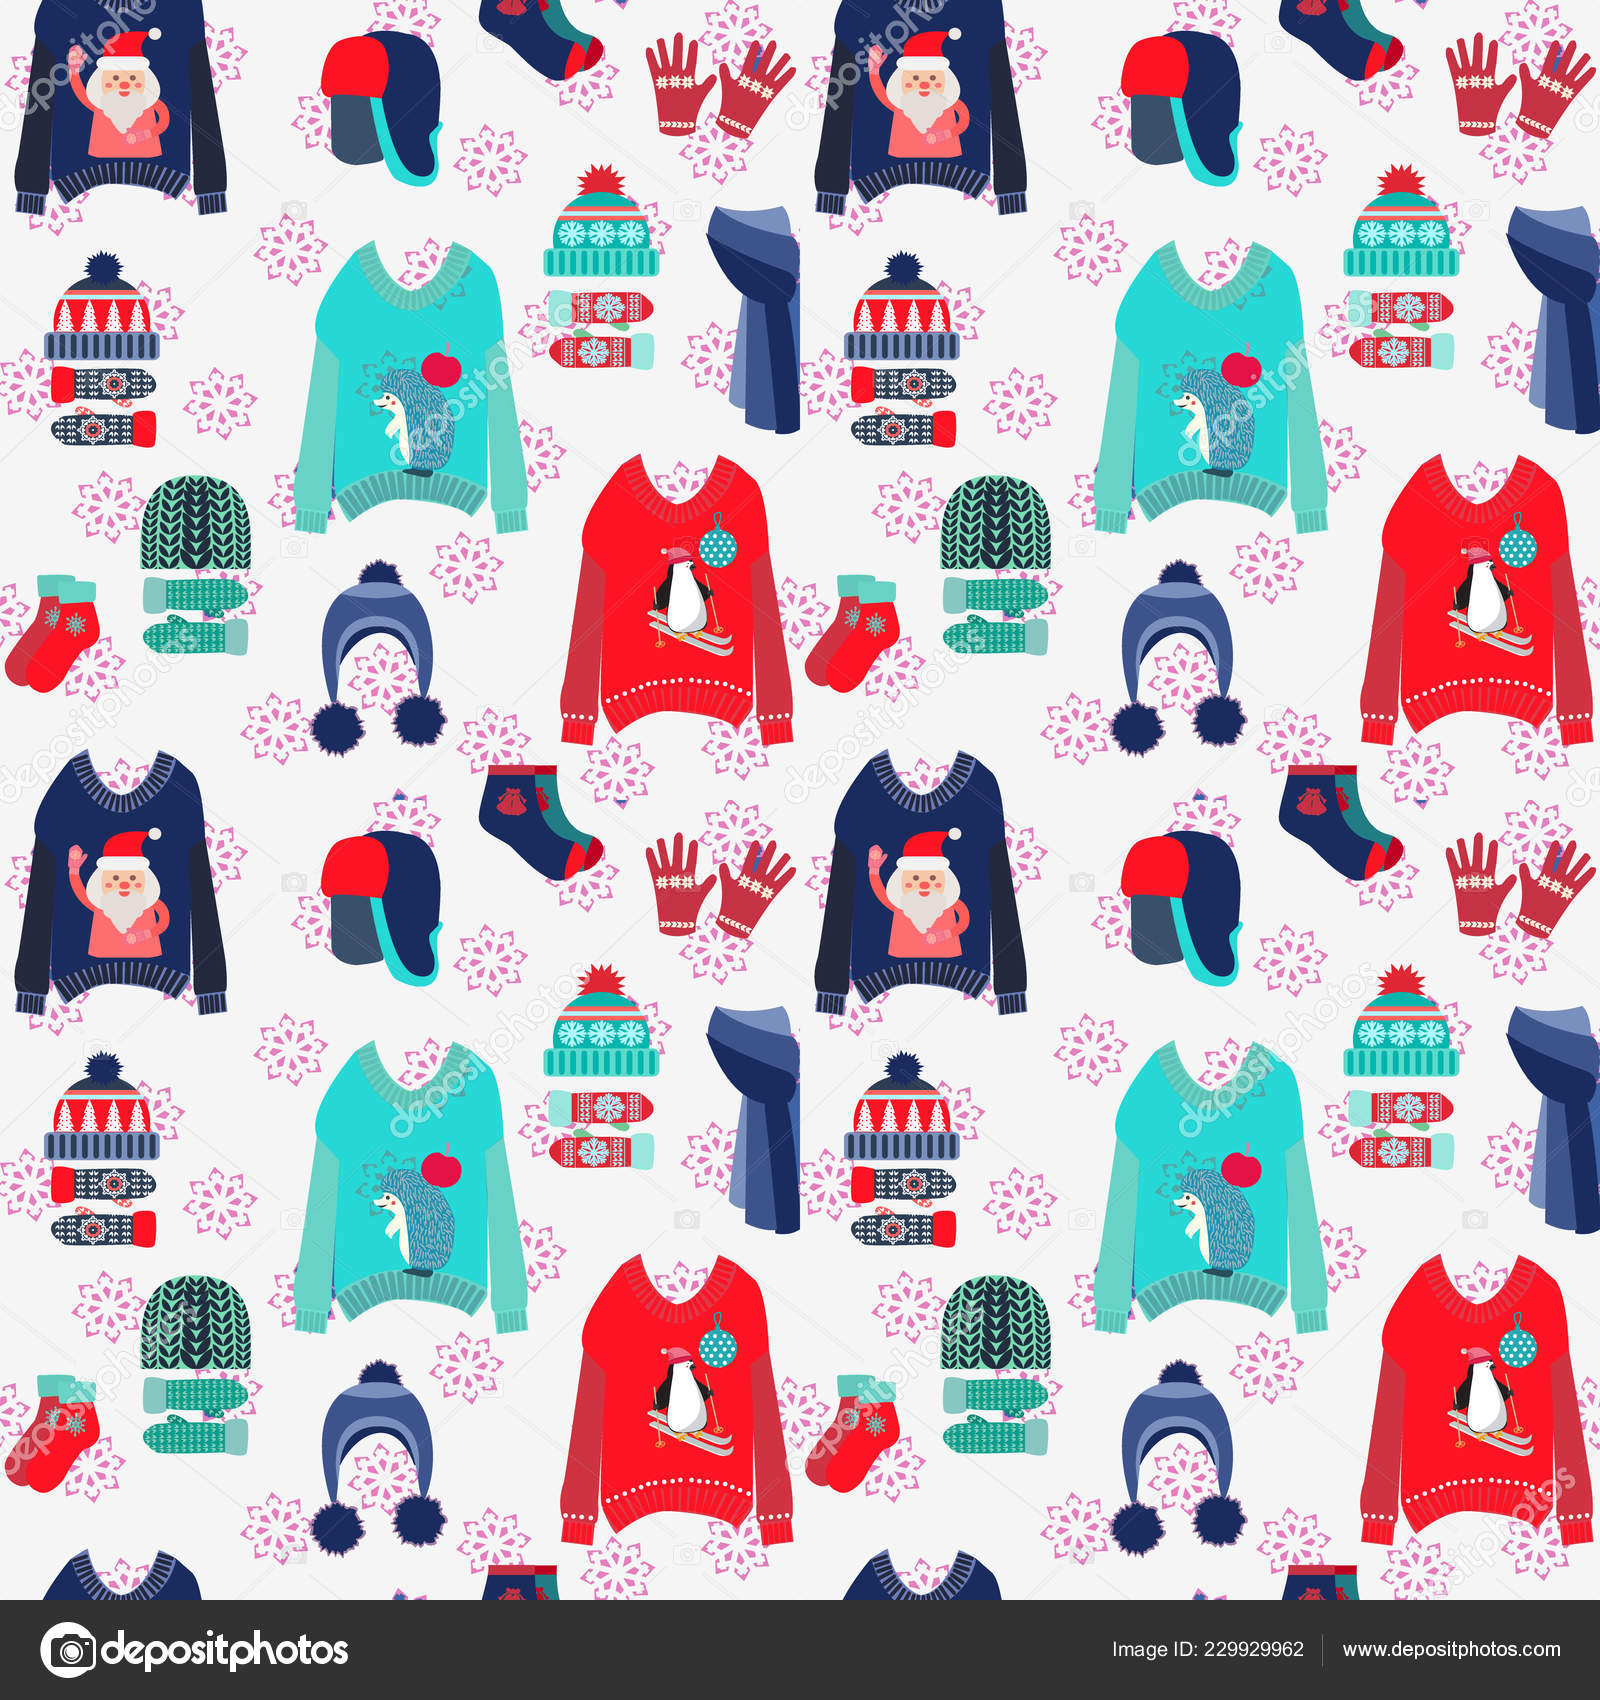 Merry Christmas Background Cute Ugly Sweaters Collection